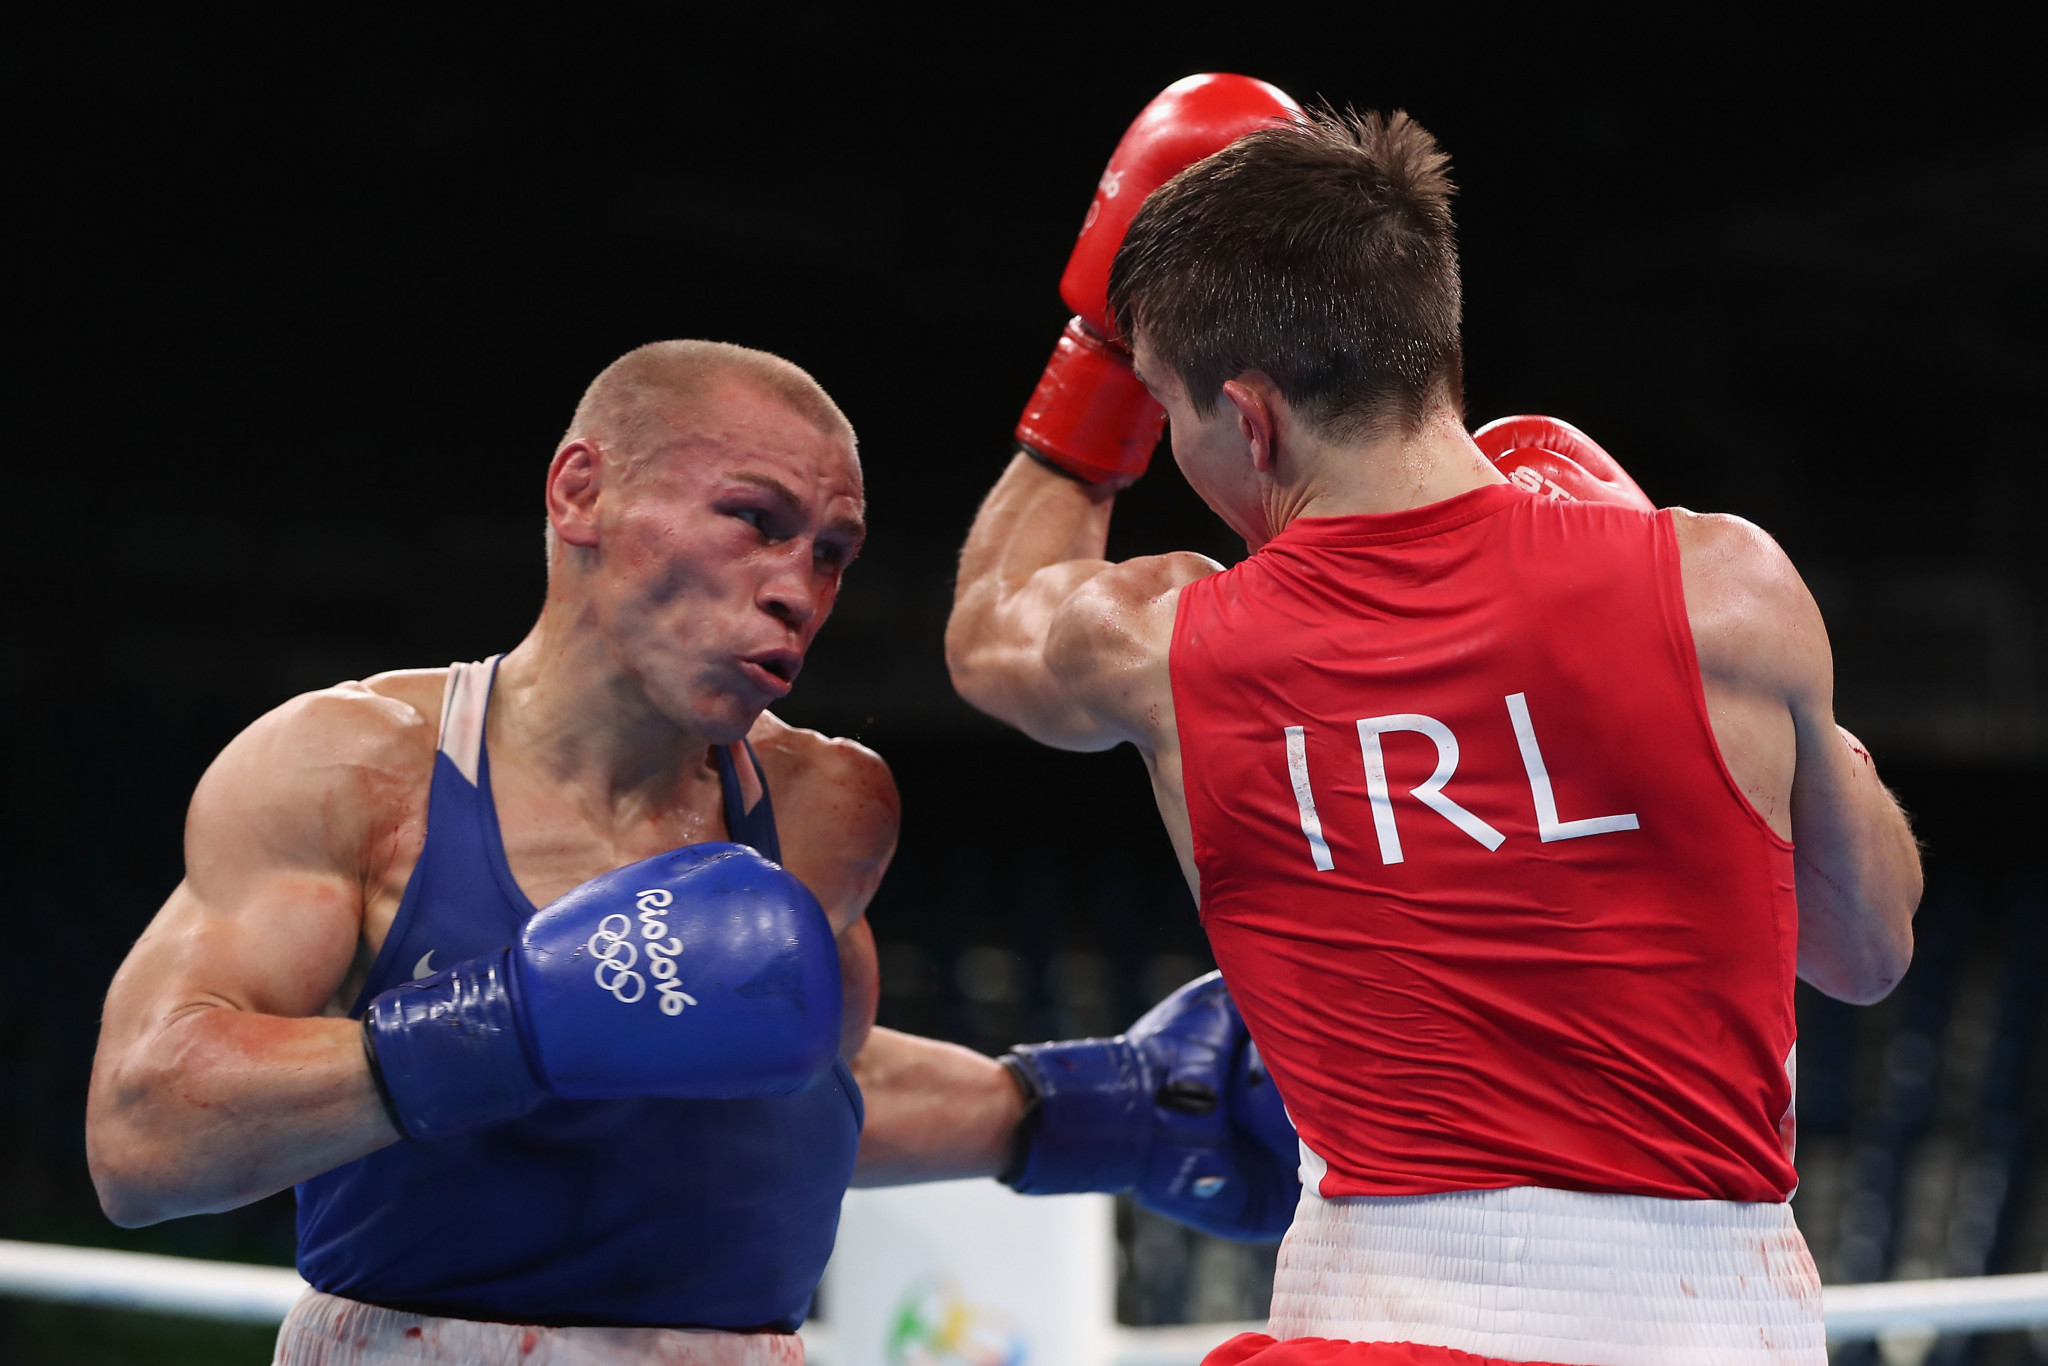 The bout lost by Michael Conlan, right, was one of many controversial fights at Rio 2016 ©Getty Images